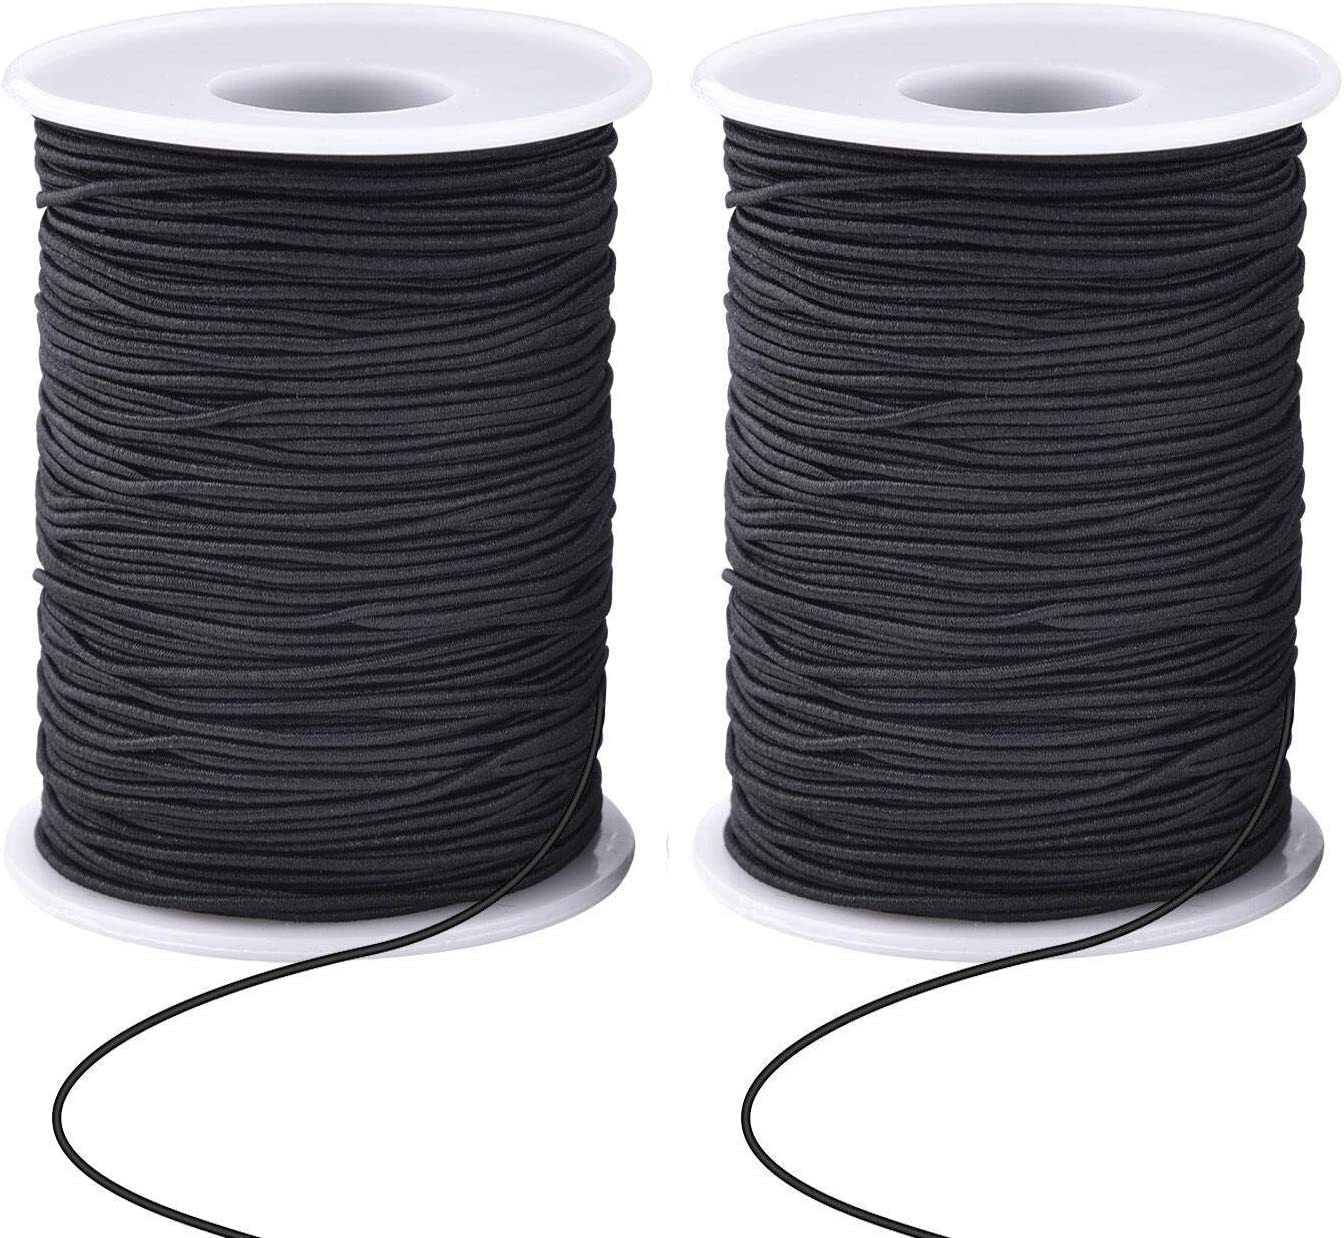 Zealor 2 Roll 0.8 mm Elastic String Cord Elastic Thread Beading String Cord for Jewelry Making Bracelets Beading 100 Meters//Roll Black